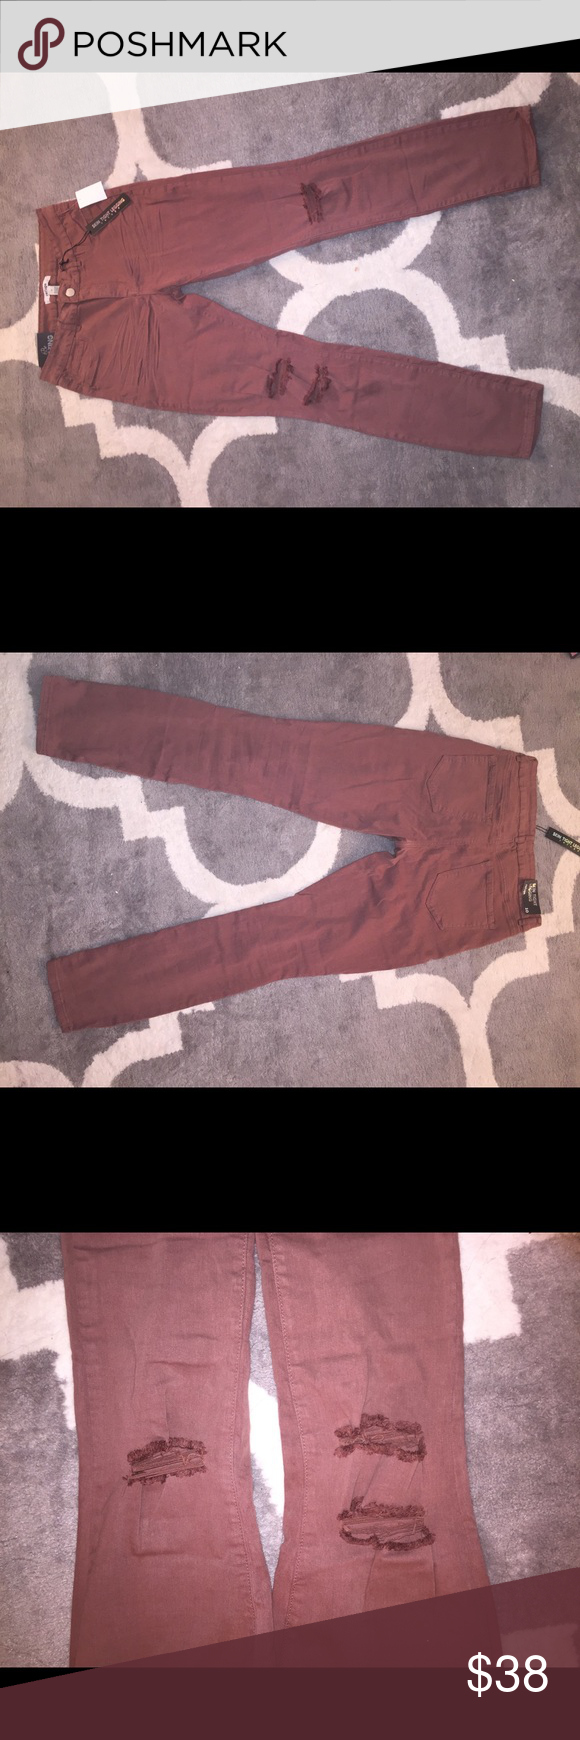 "Destroyed Jeans Size 10 Refuge ""Skin Tight Legging"" Destroyed Jeans Mauve color Stretch fit Charlotte Russe Charlotte Russe Jeans Skinny"